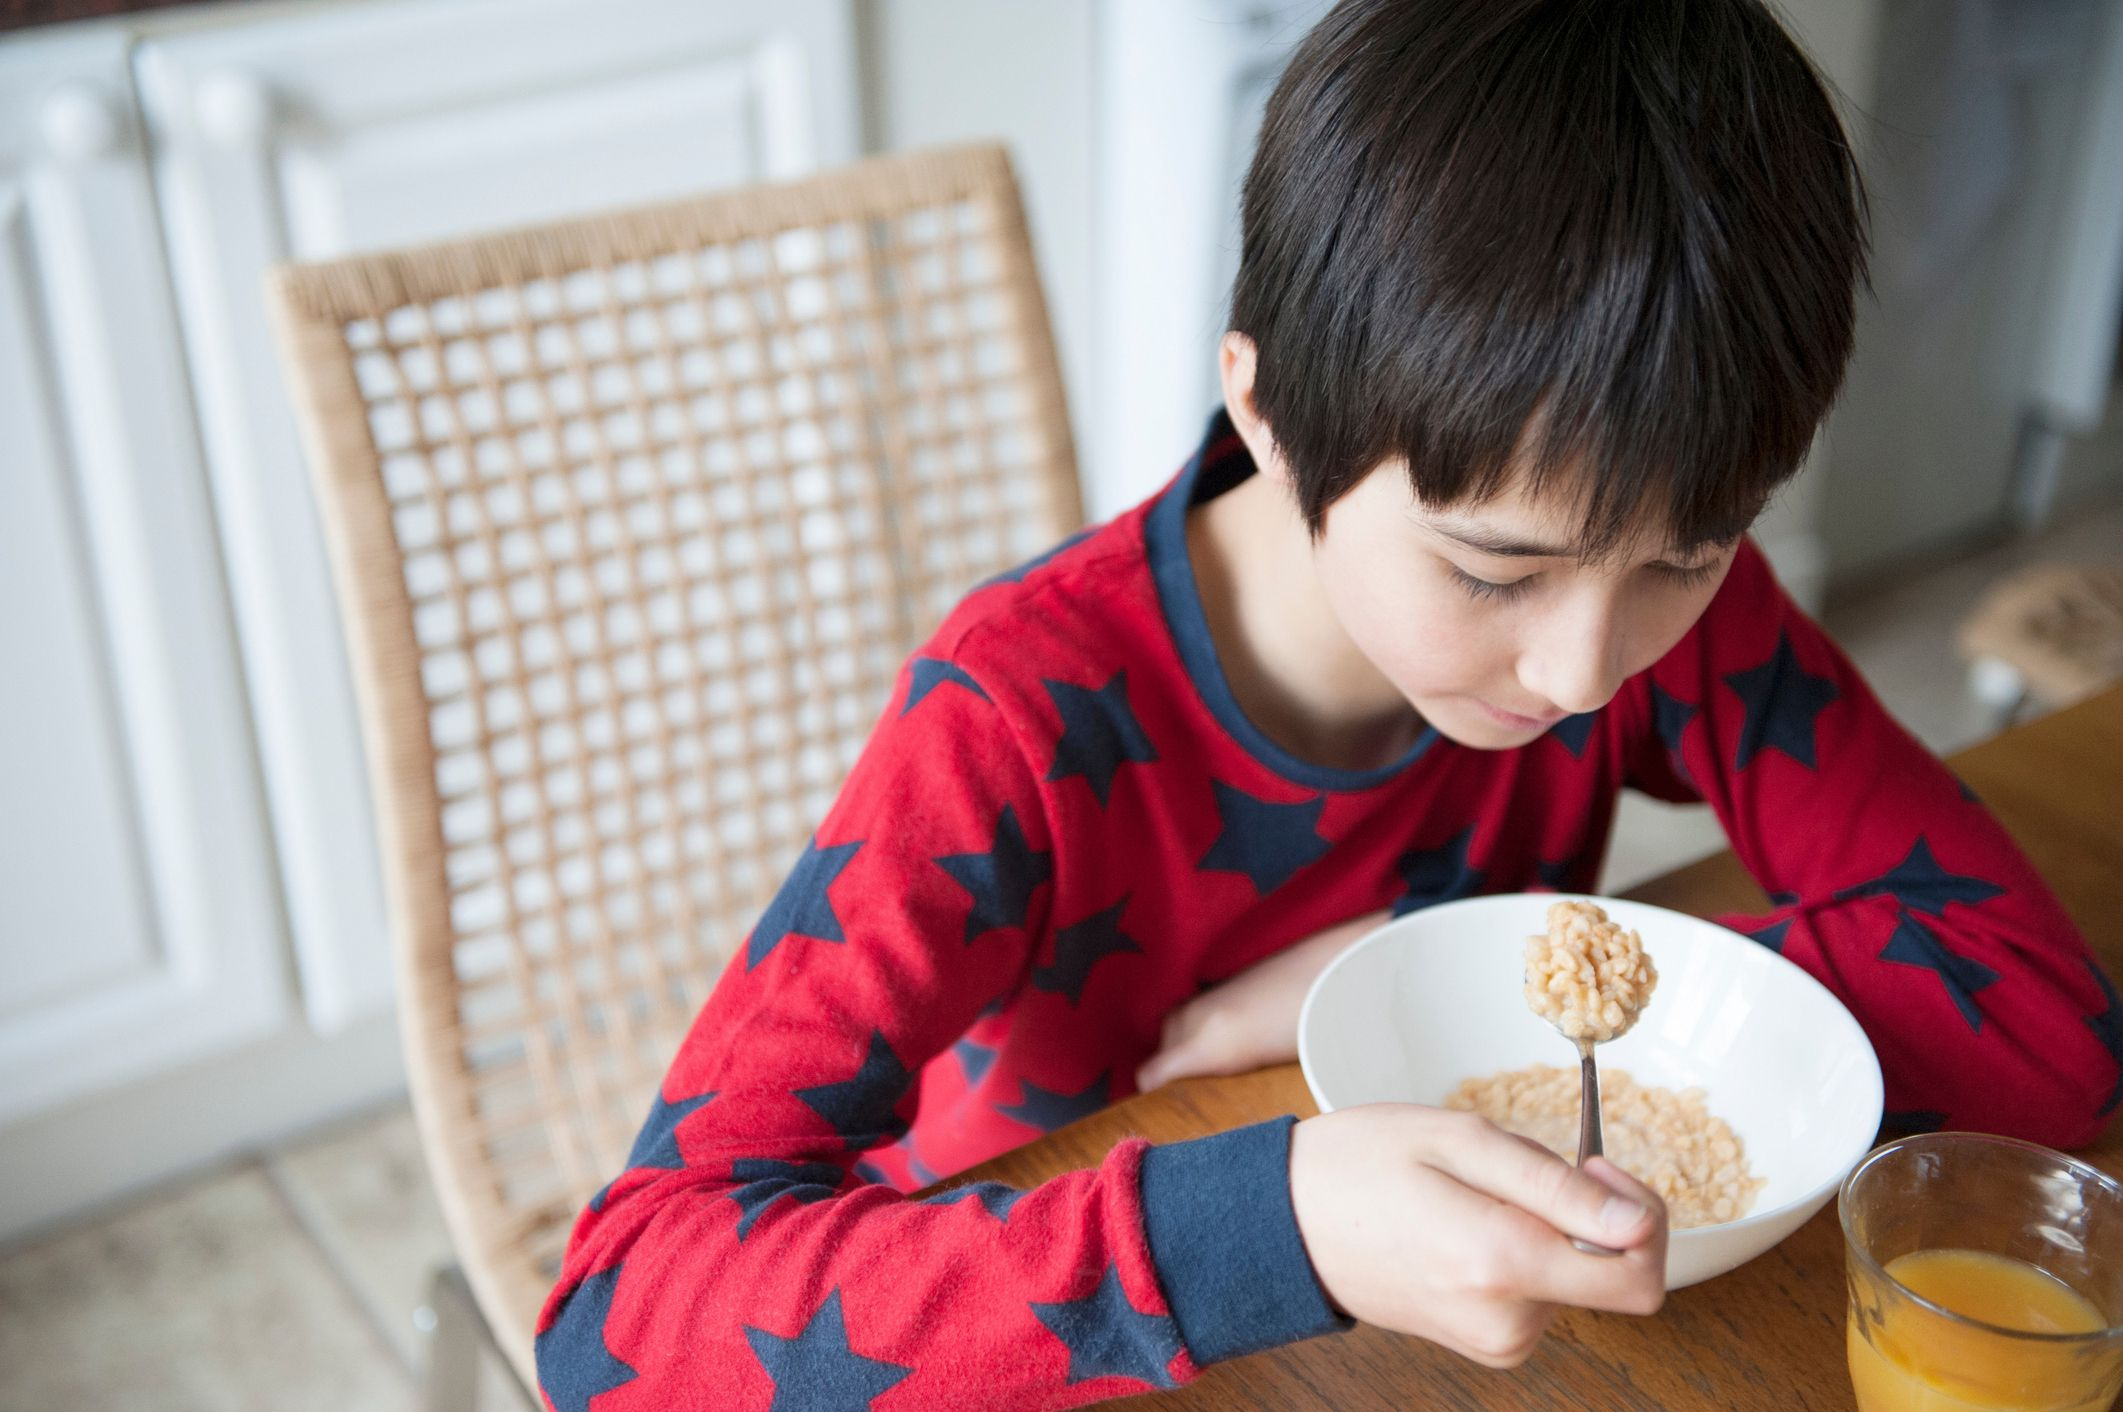 major name brand grown up cereals that are good for you